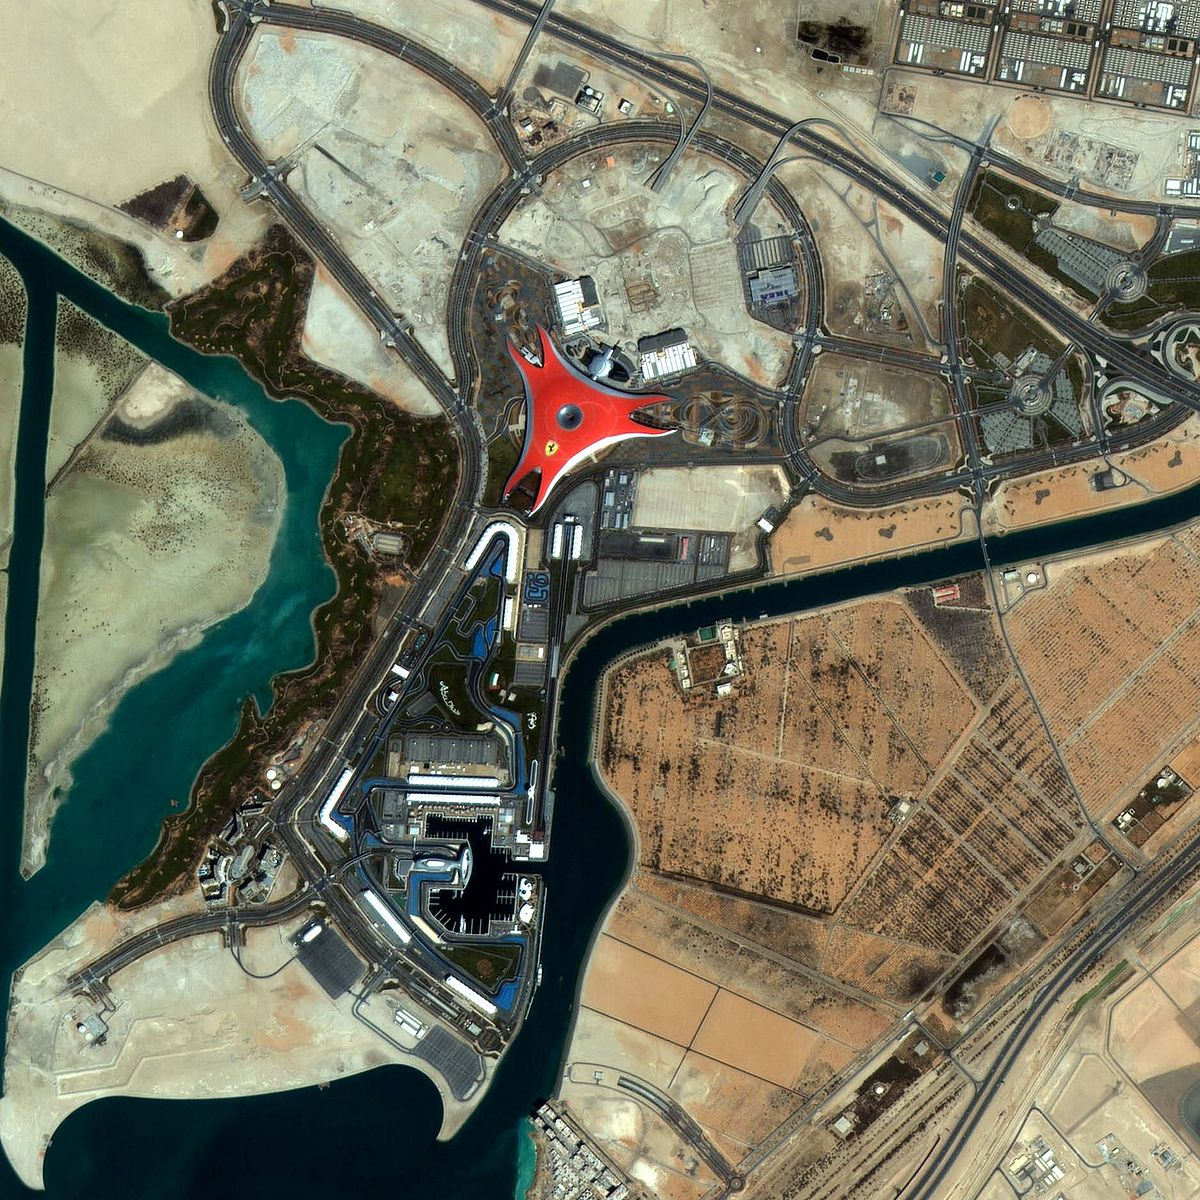 Ferrari world abu dhabi wikipedia wolna encyklopedia gumiabroncs Gallery